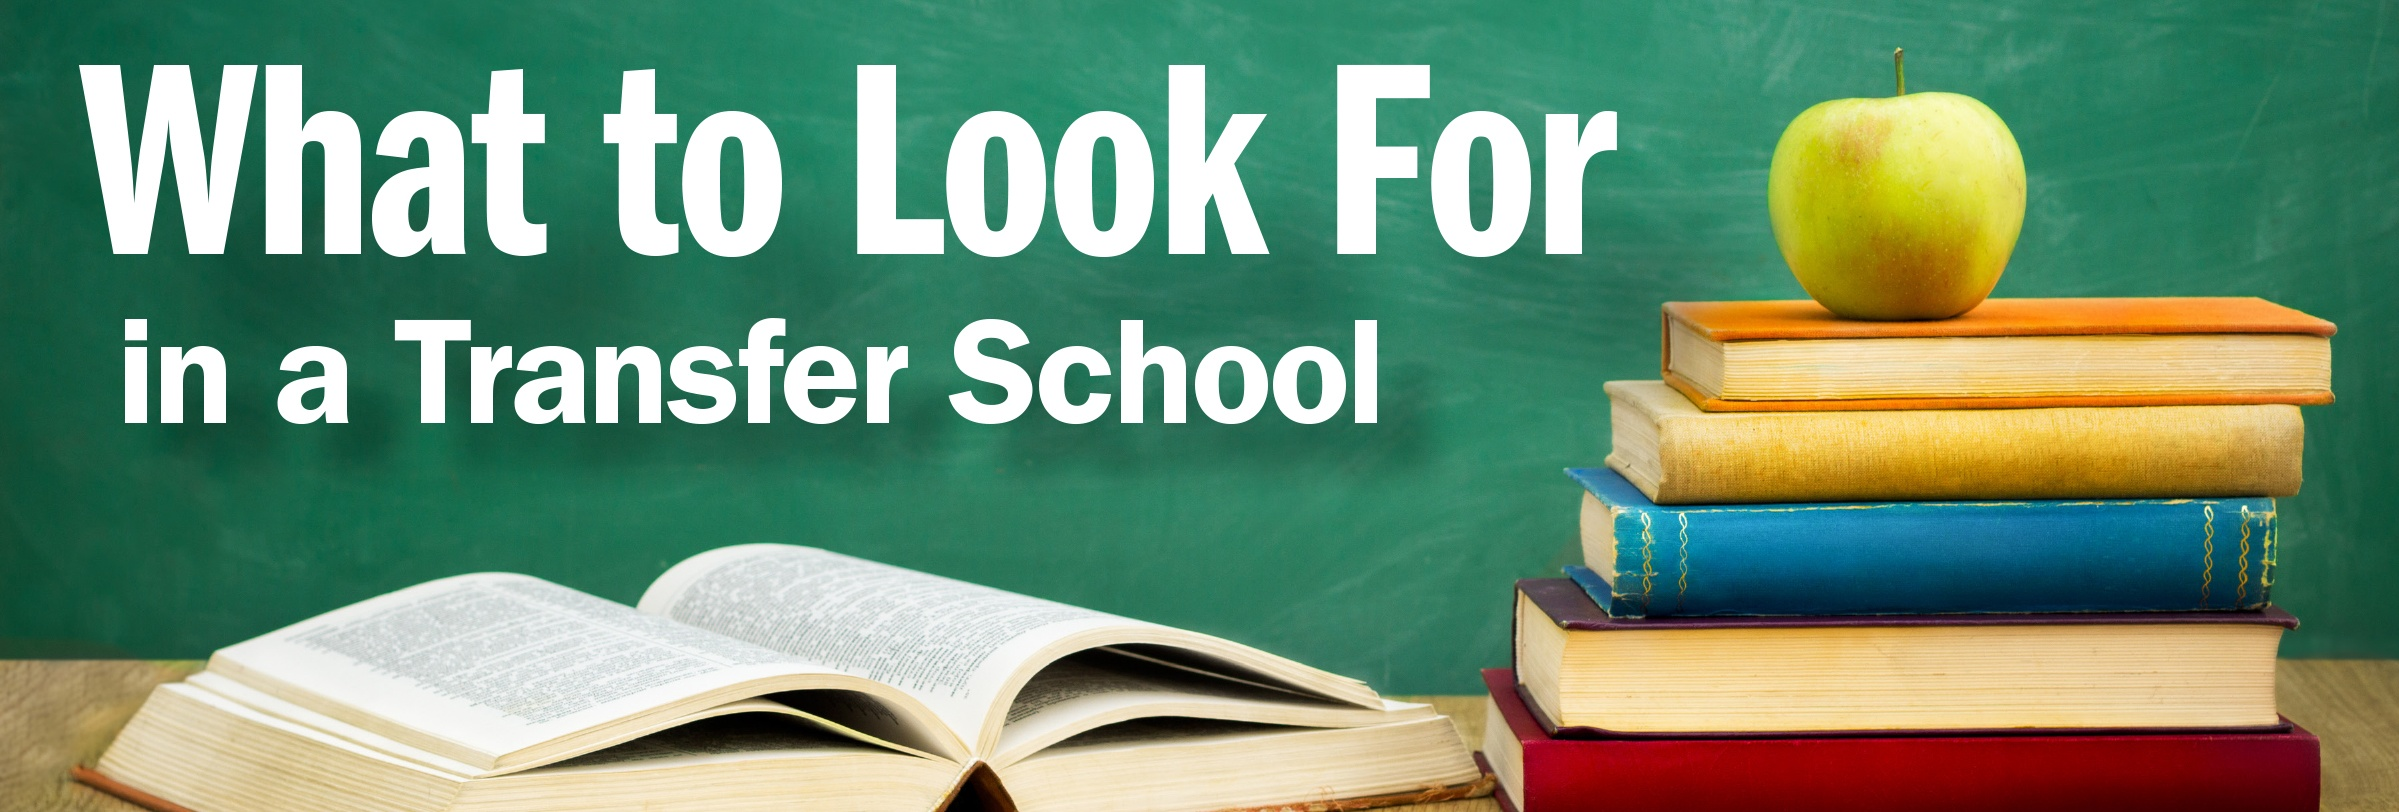 what to look for in a transfer school joliet junior college jjc